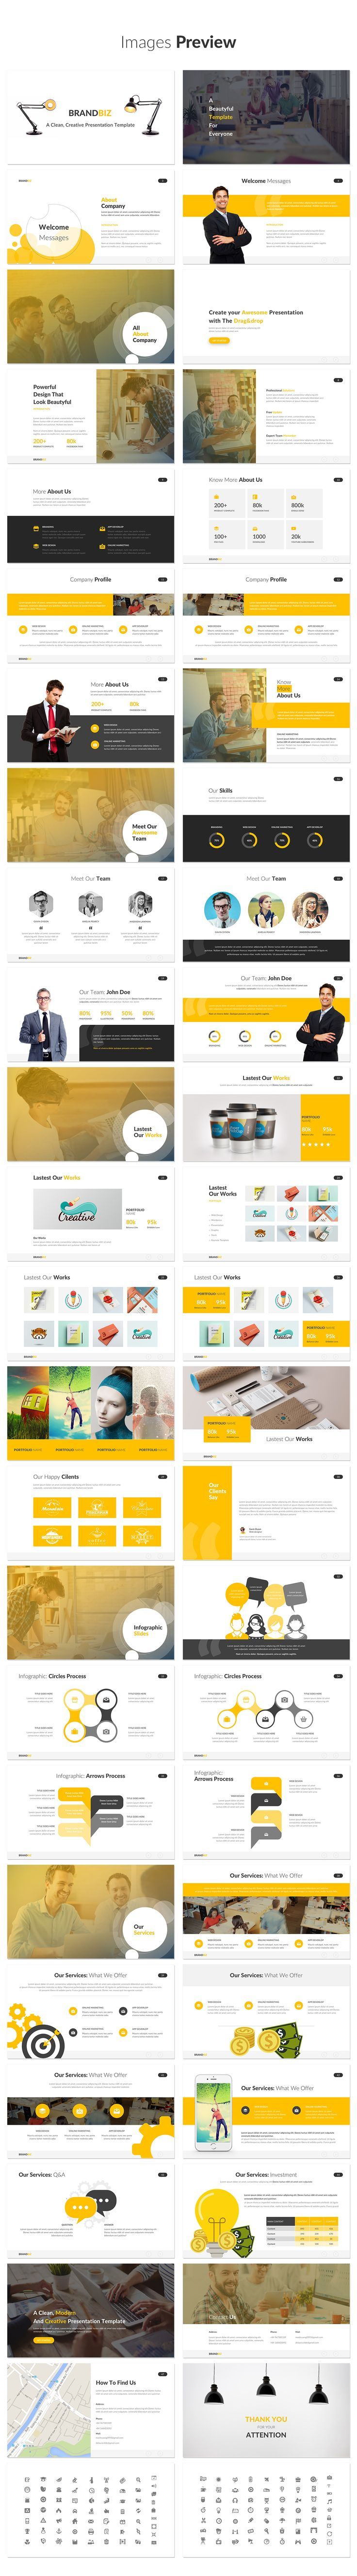 Brandbiz powerpoint template powerpoint templates template brandbiz powerpoint template powerpoint templates alramifo Image collections